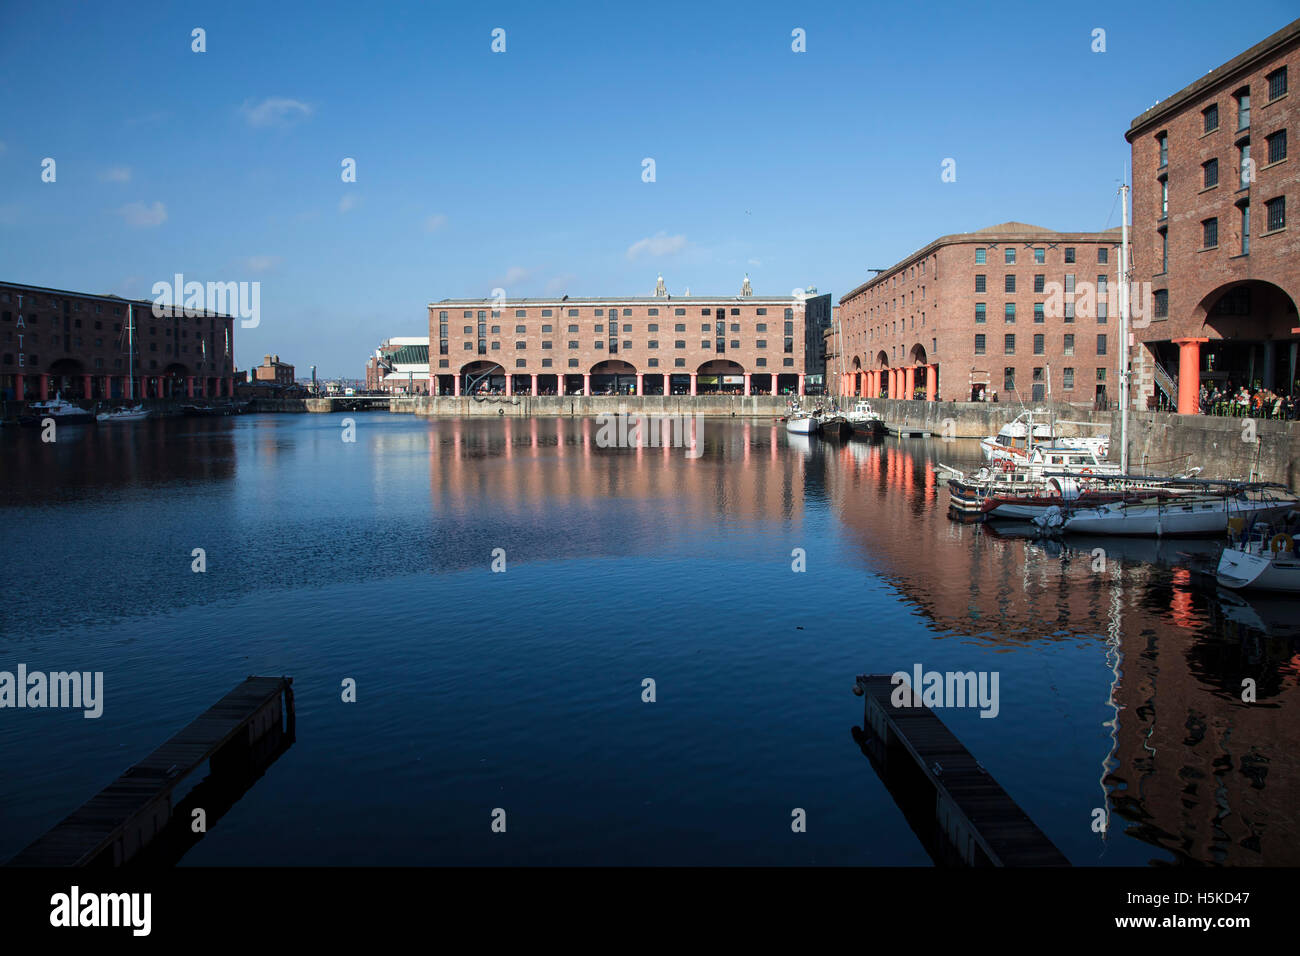 A view of the renovated Albert Dock in Liverpool city following its closure and renovation - Stock Image